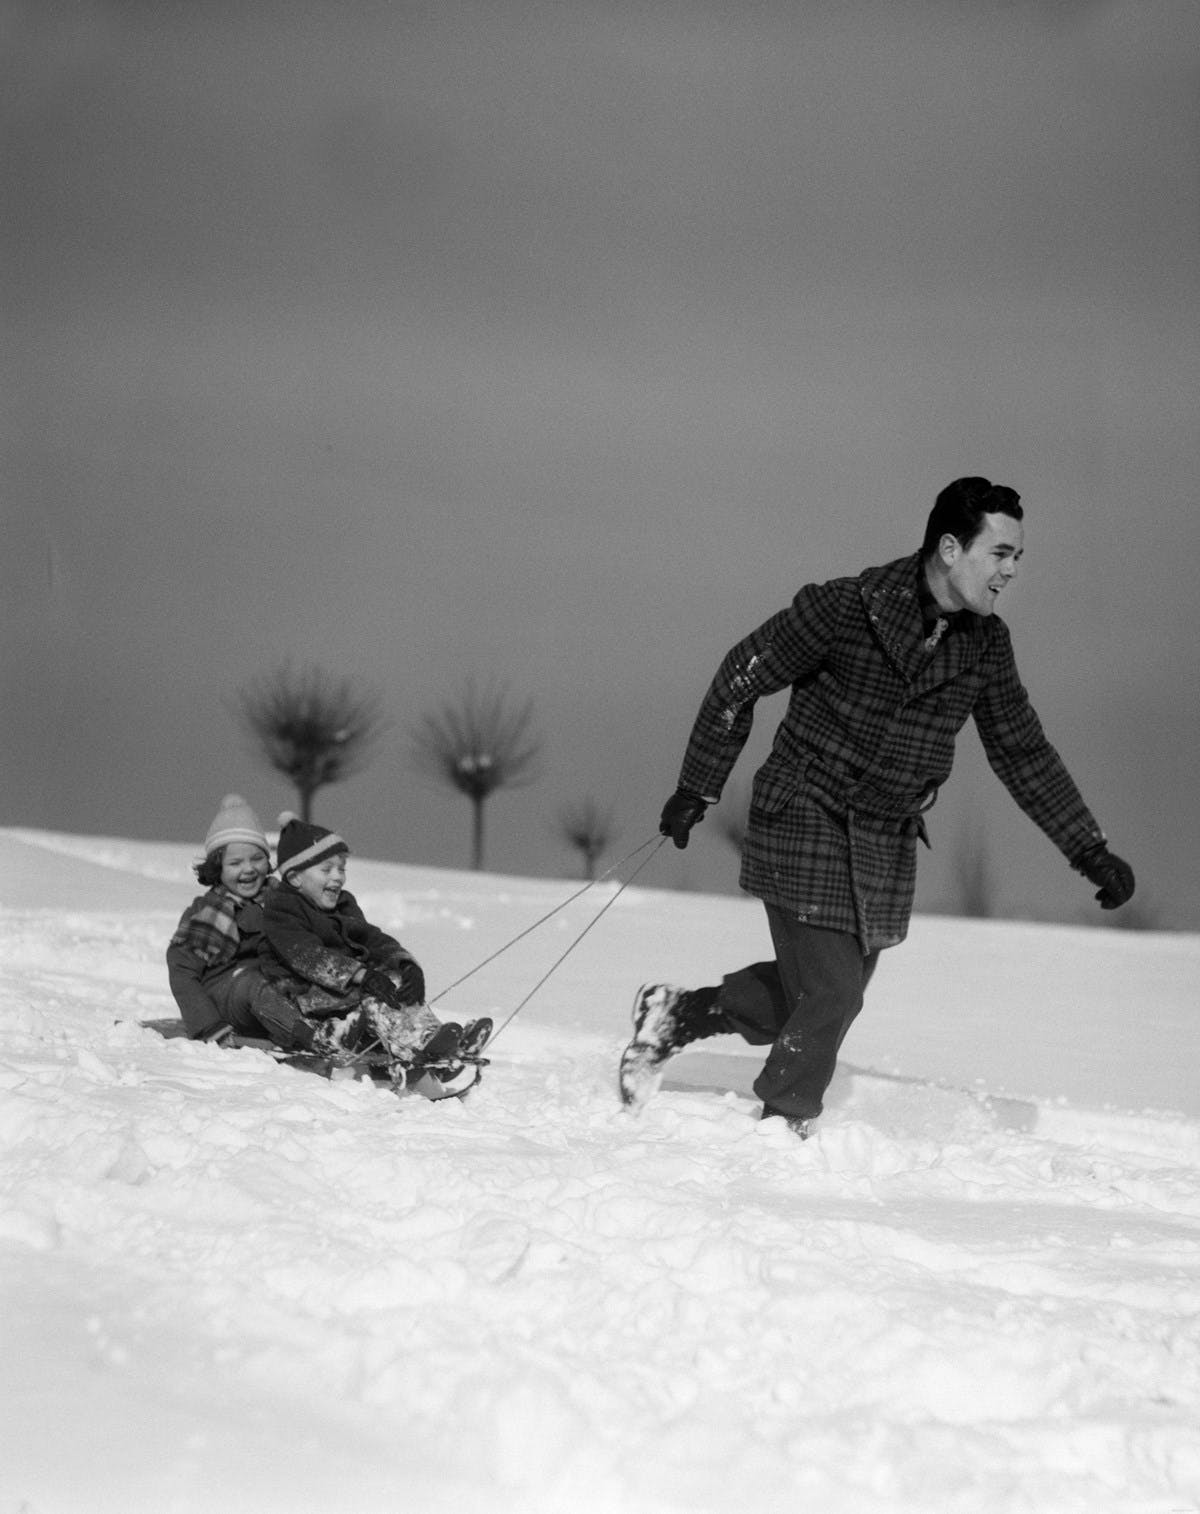 A black-and-white photograph of a young father pulling his two children on a sledge through a snowy landscape.